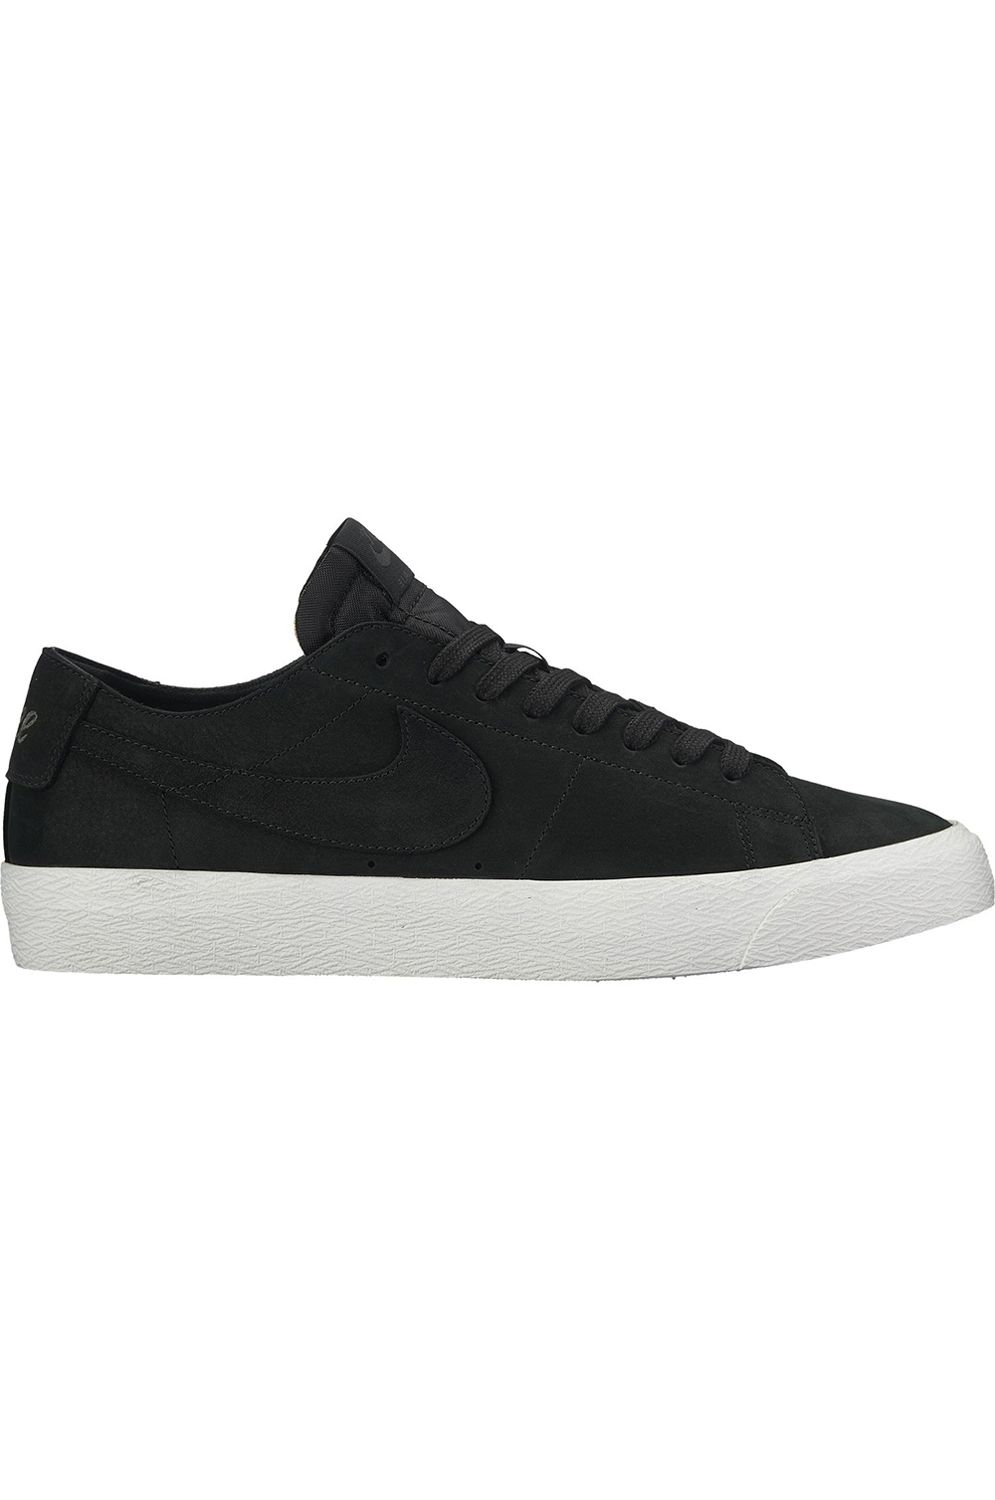 Tenis Nike Sb ZOOM BLAZER LOW DECON Black/Black